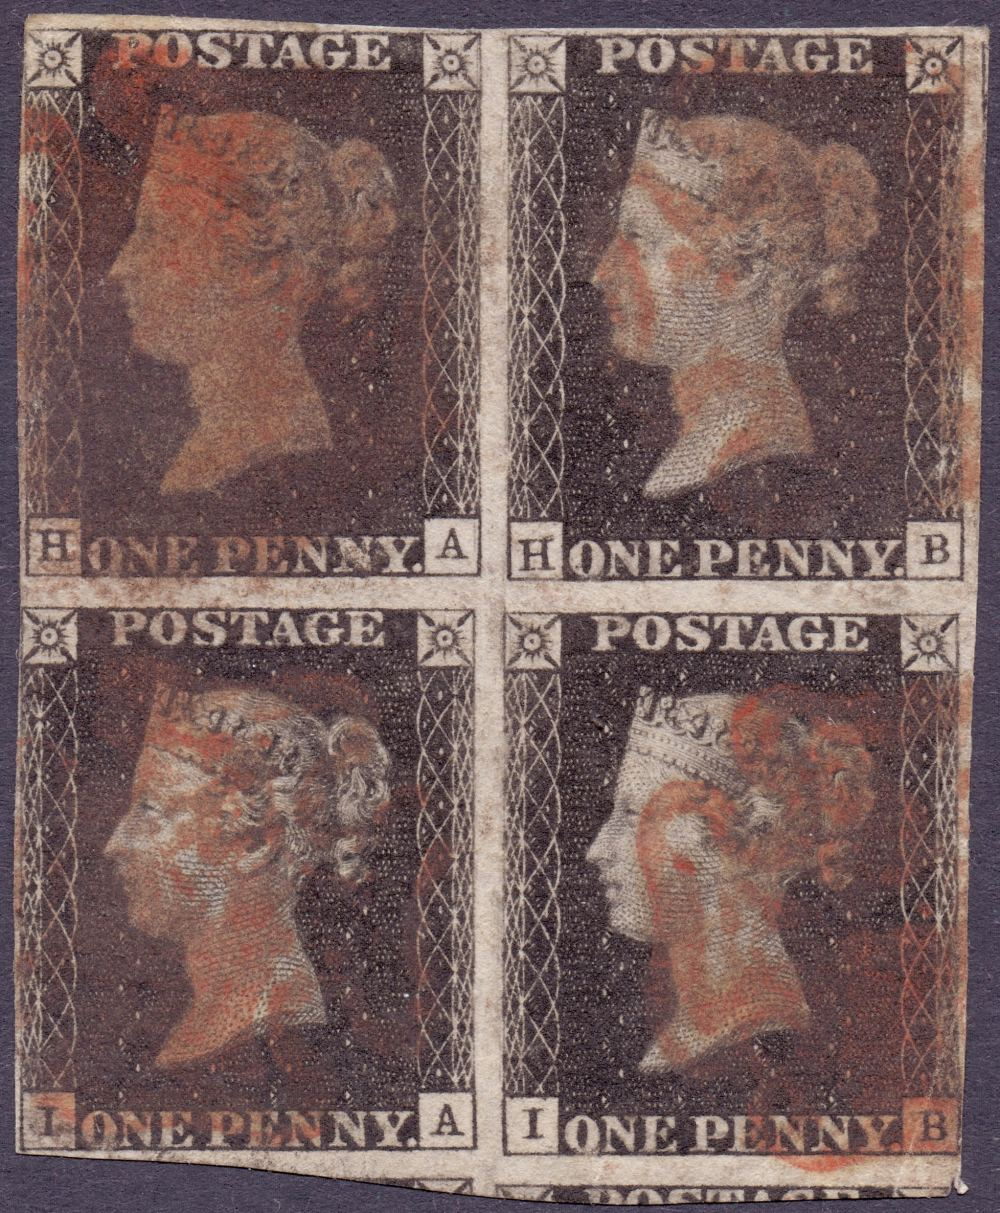 Lot 189 - GREAT BRITAIN STAMPS : PENNY BLACK Plate